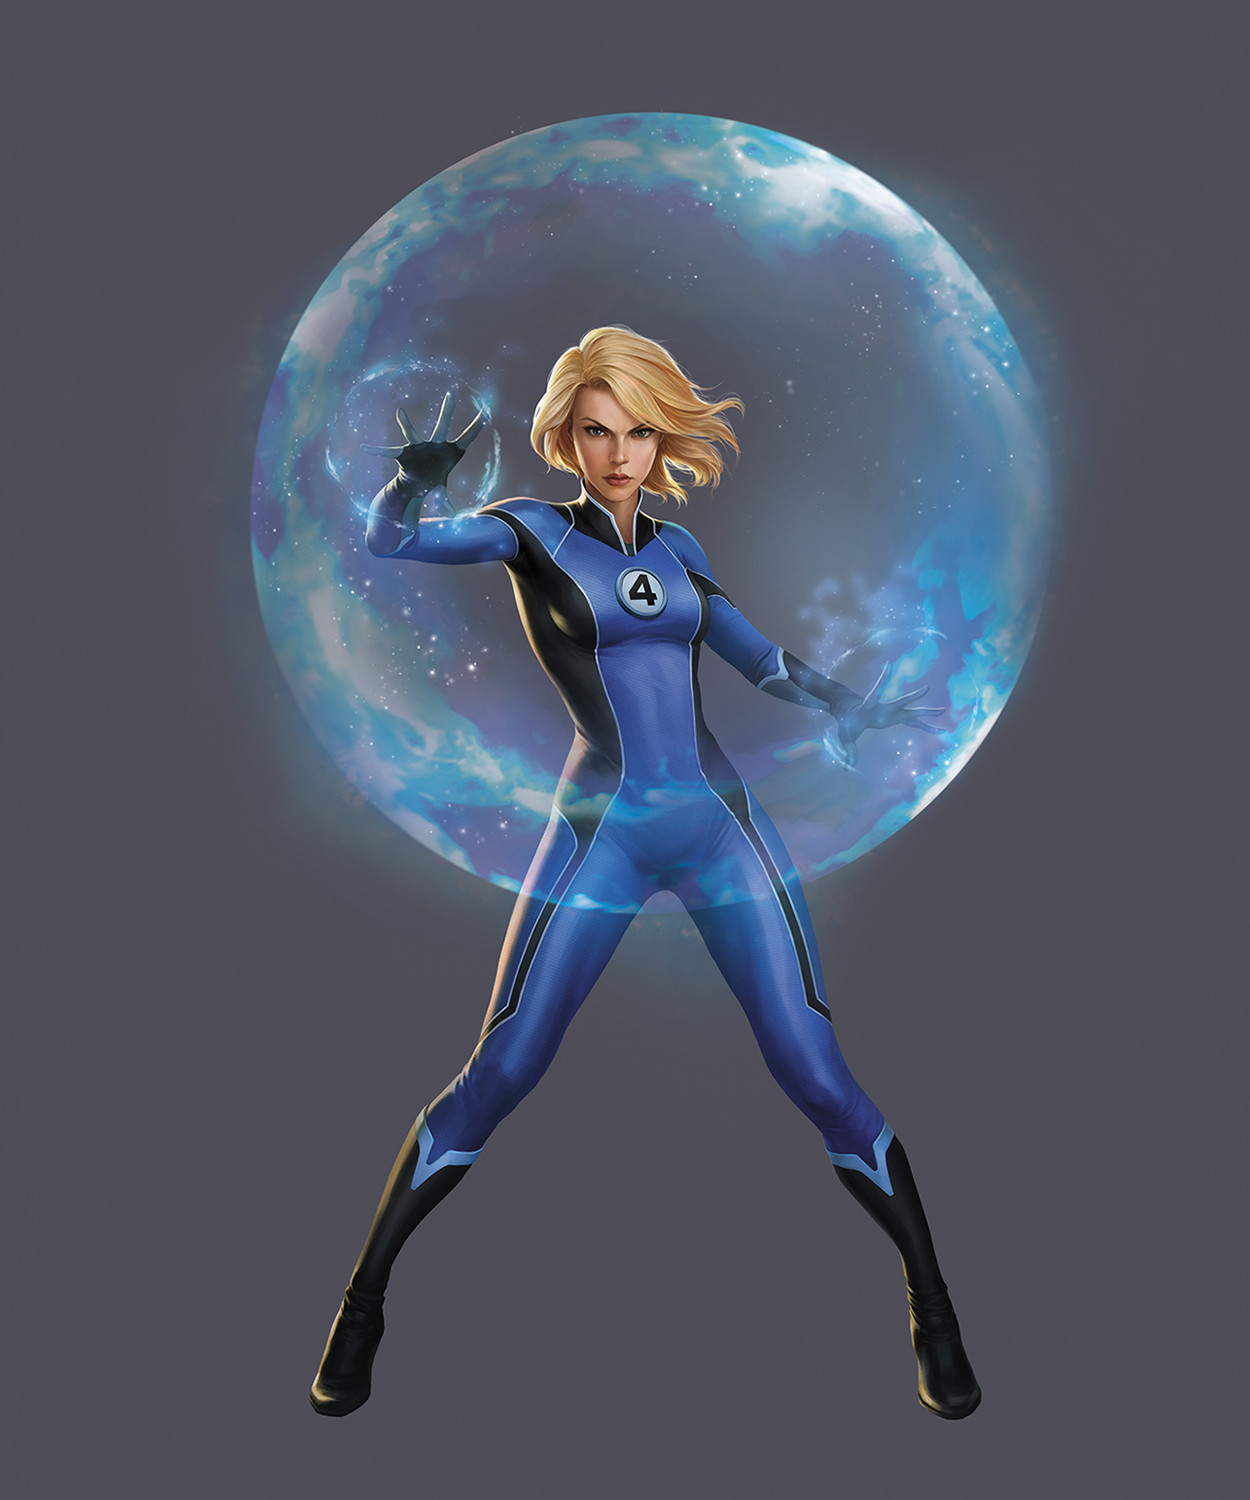 Marvel_Fantastic4_Invisible Woman_YinYum